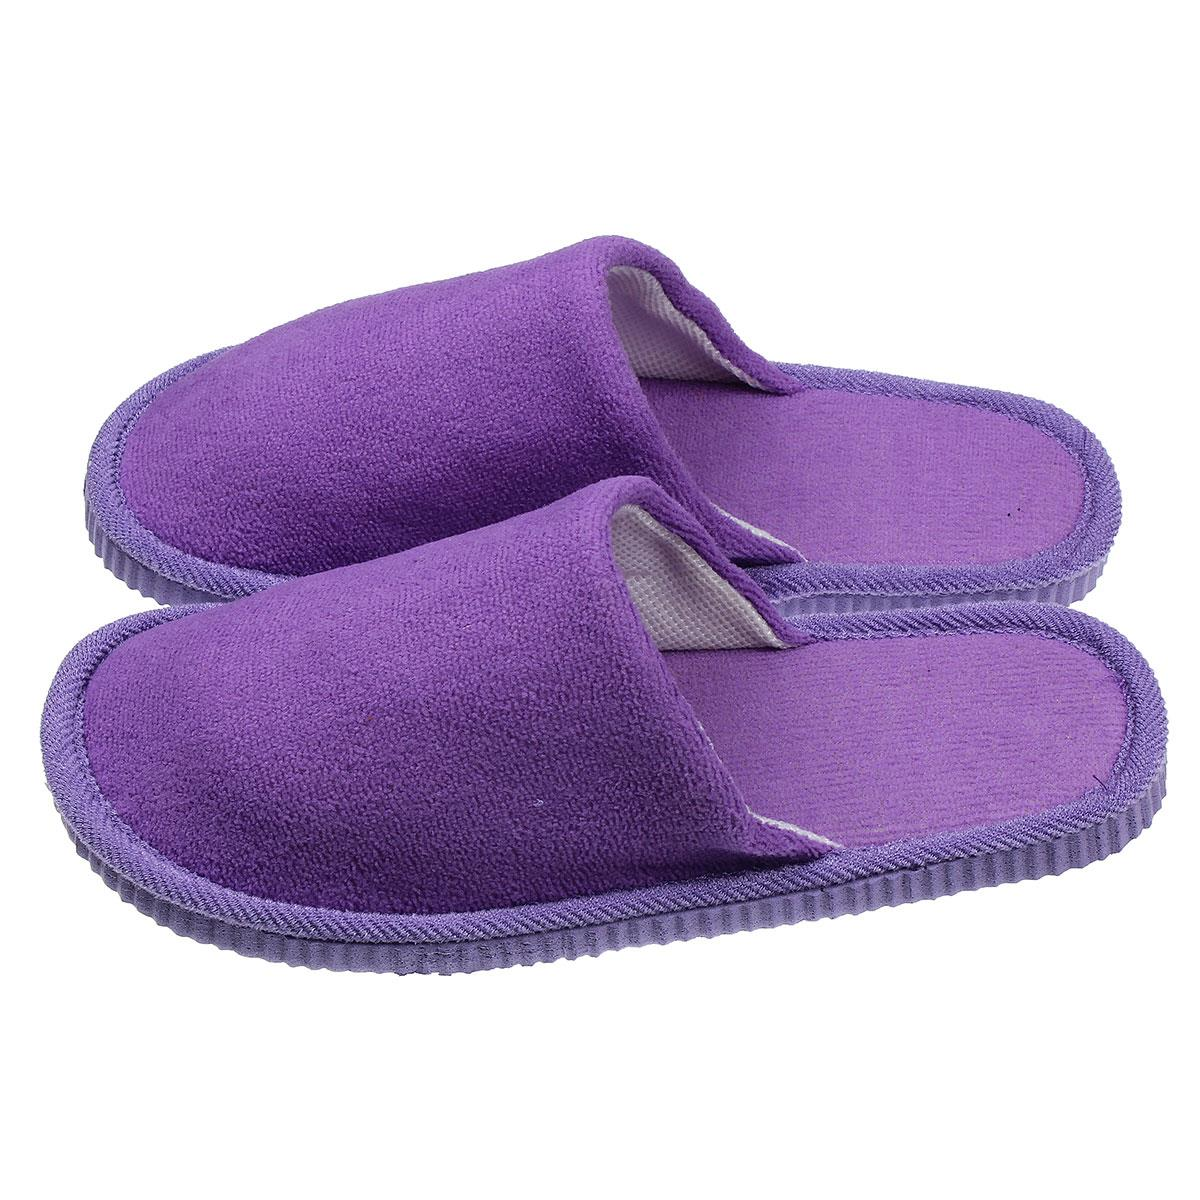 womens bedroom slippers reviews online shopping womens bedroom slippers reviews on aliexpress. Black Bedroom Furniture Sets. Home Design Ideas